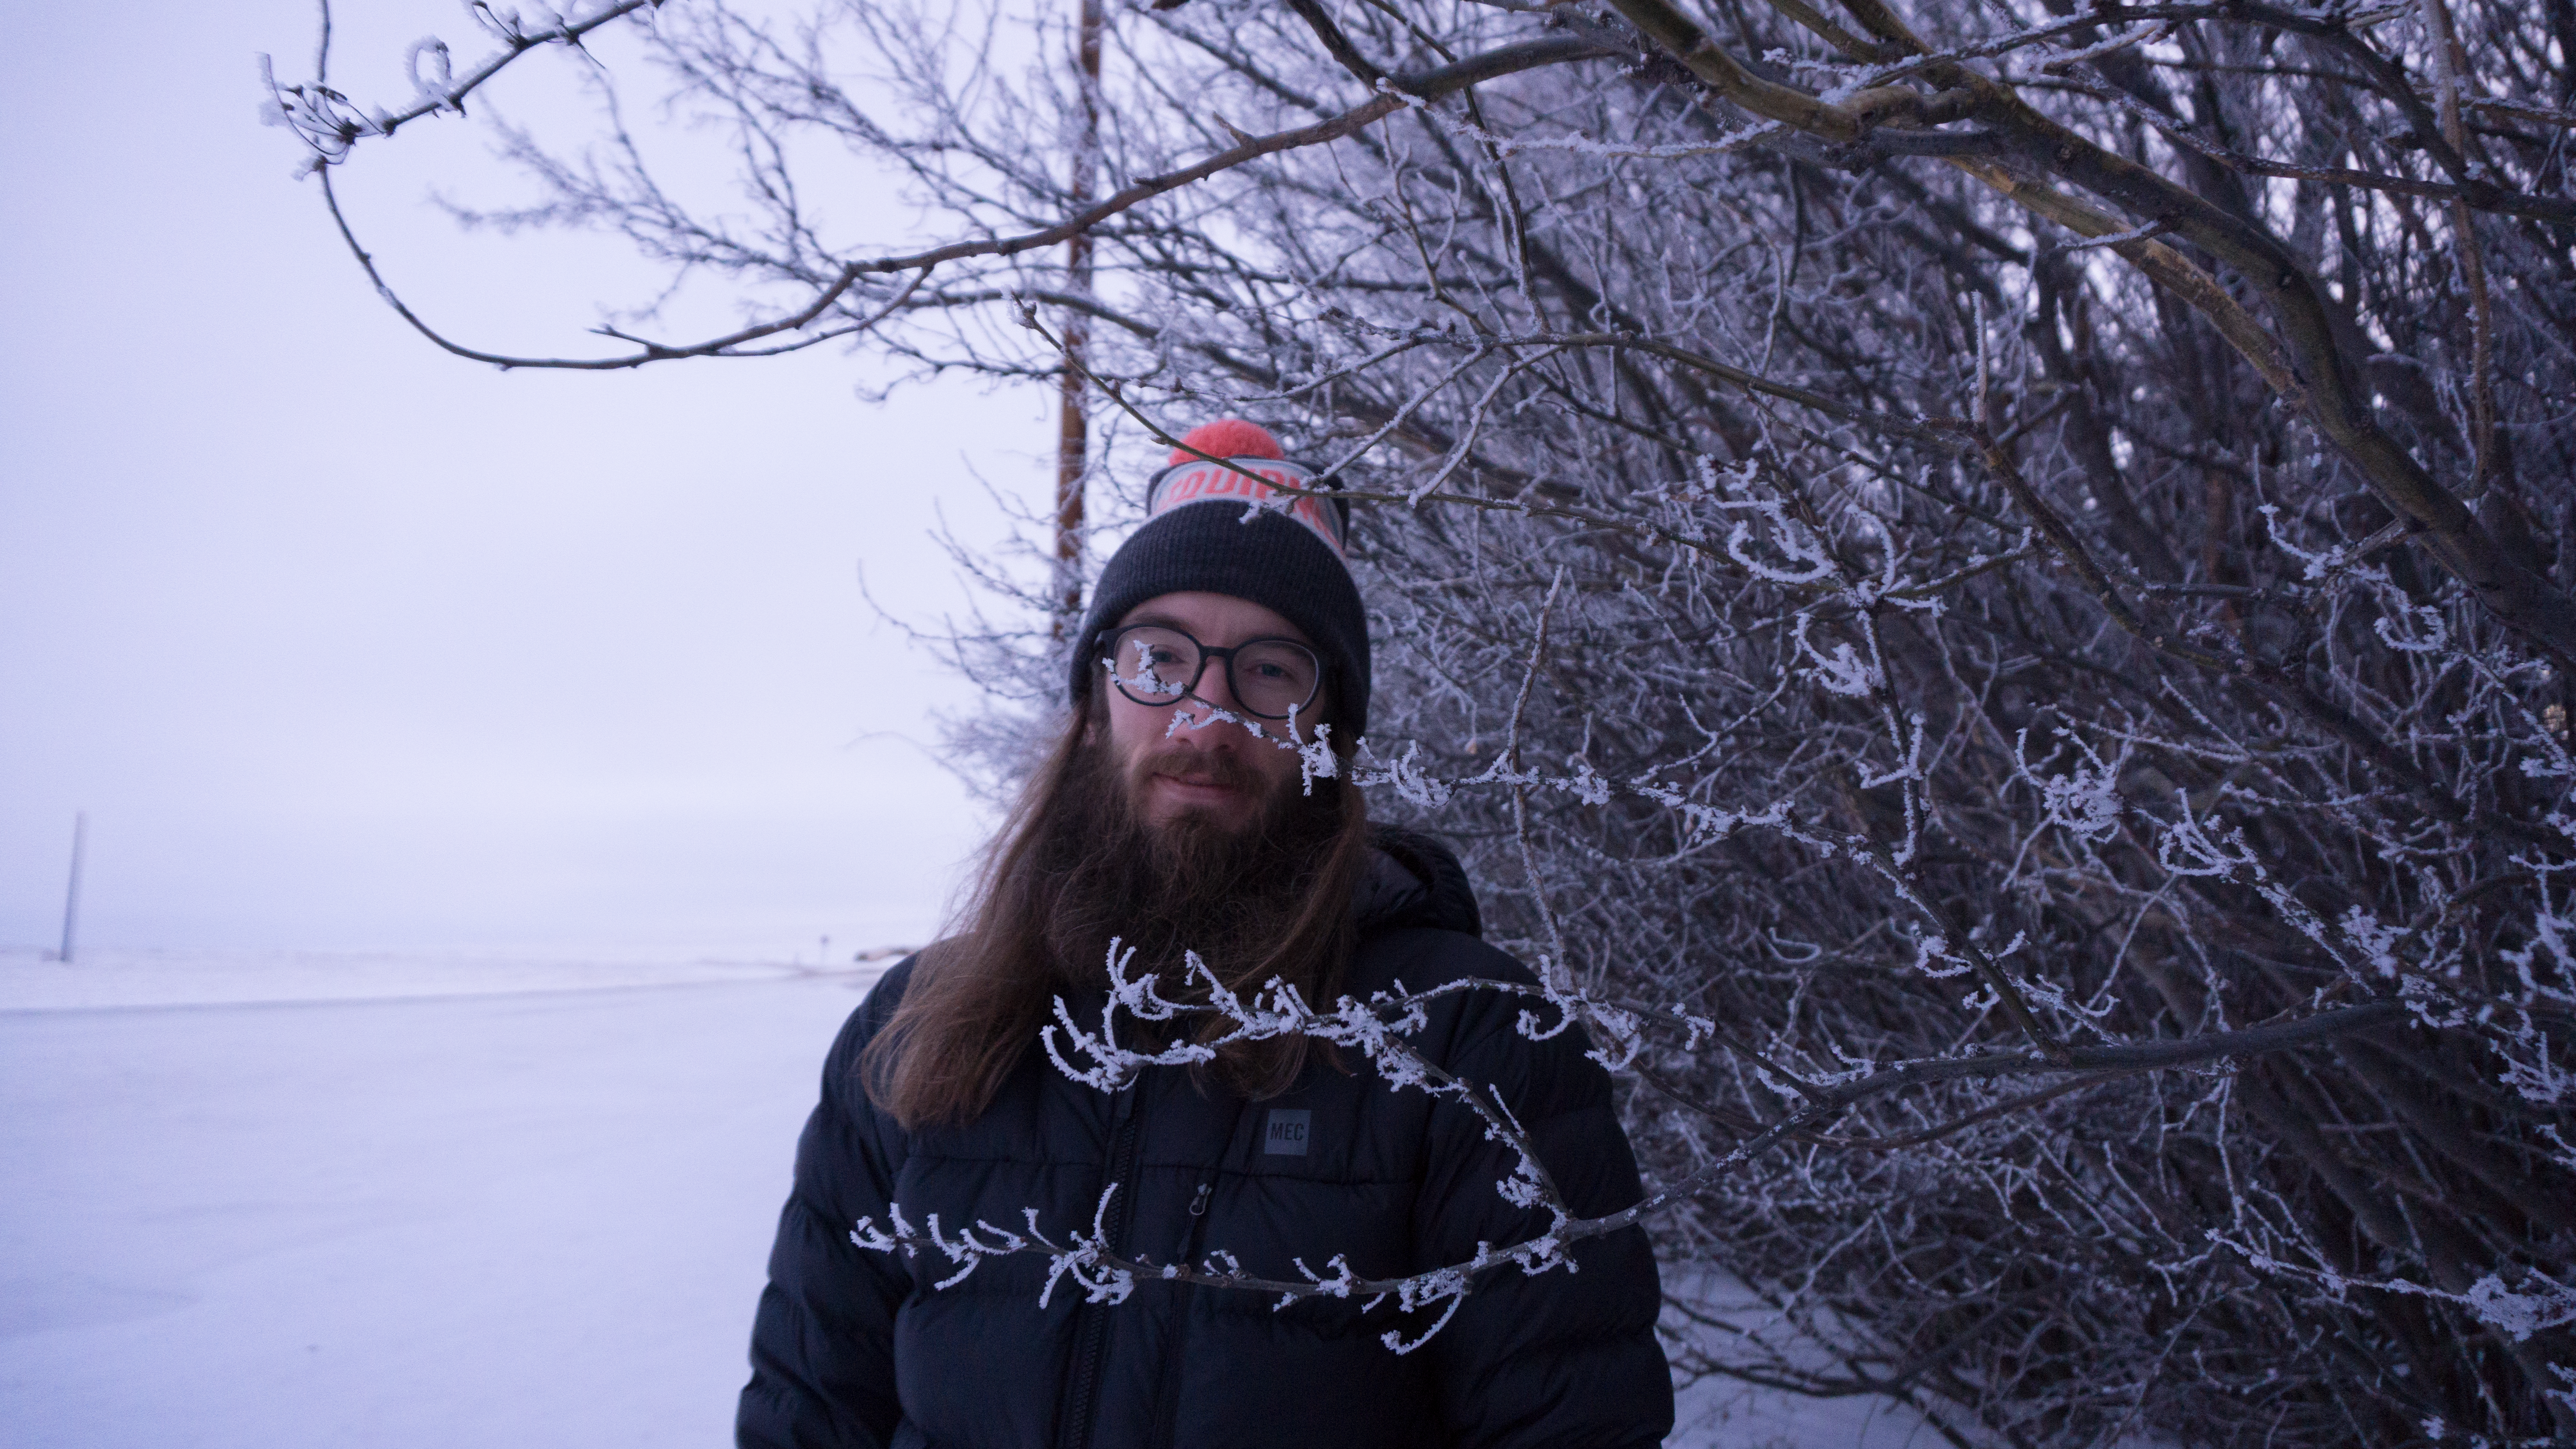 Man standing behind a snowy branch outside in winter